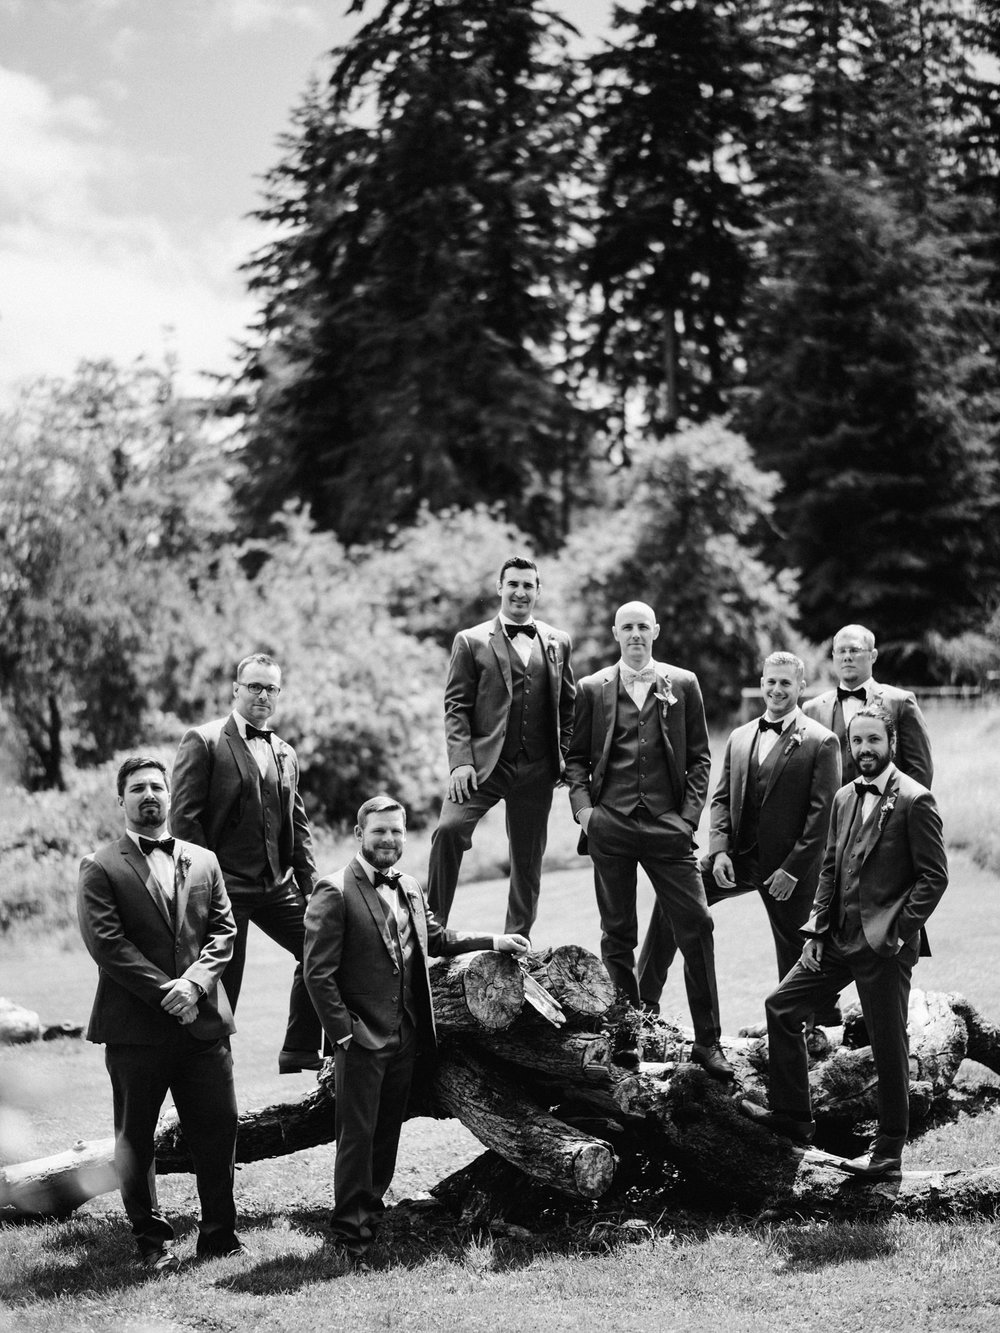 037-timeless-portrait-of-groomsmen-by-top-seattle-photographer-ryan-flynn.jpg